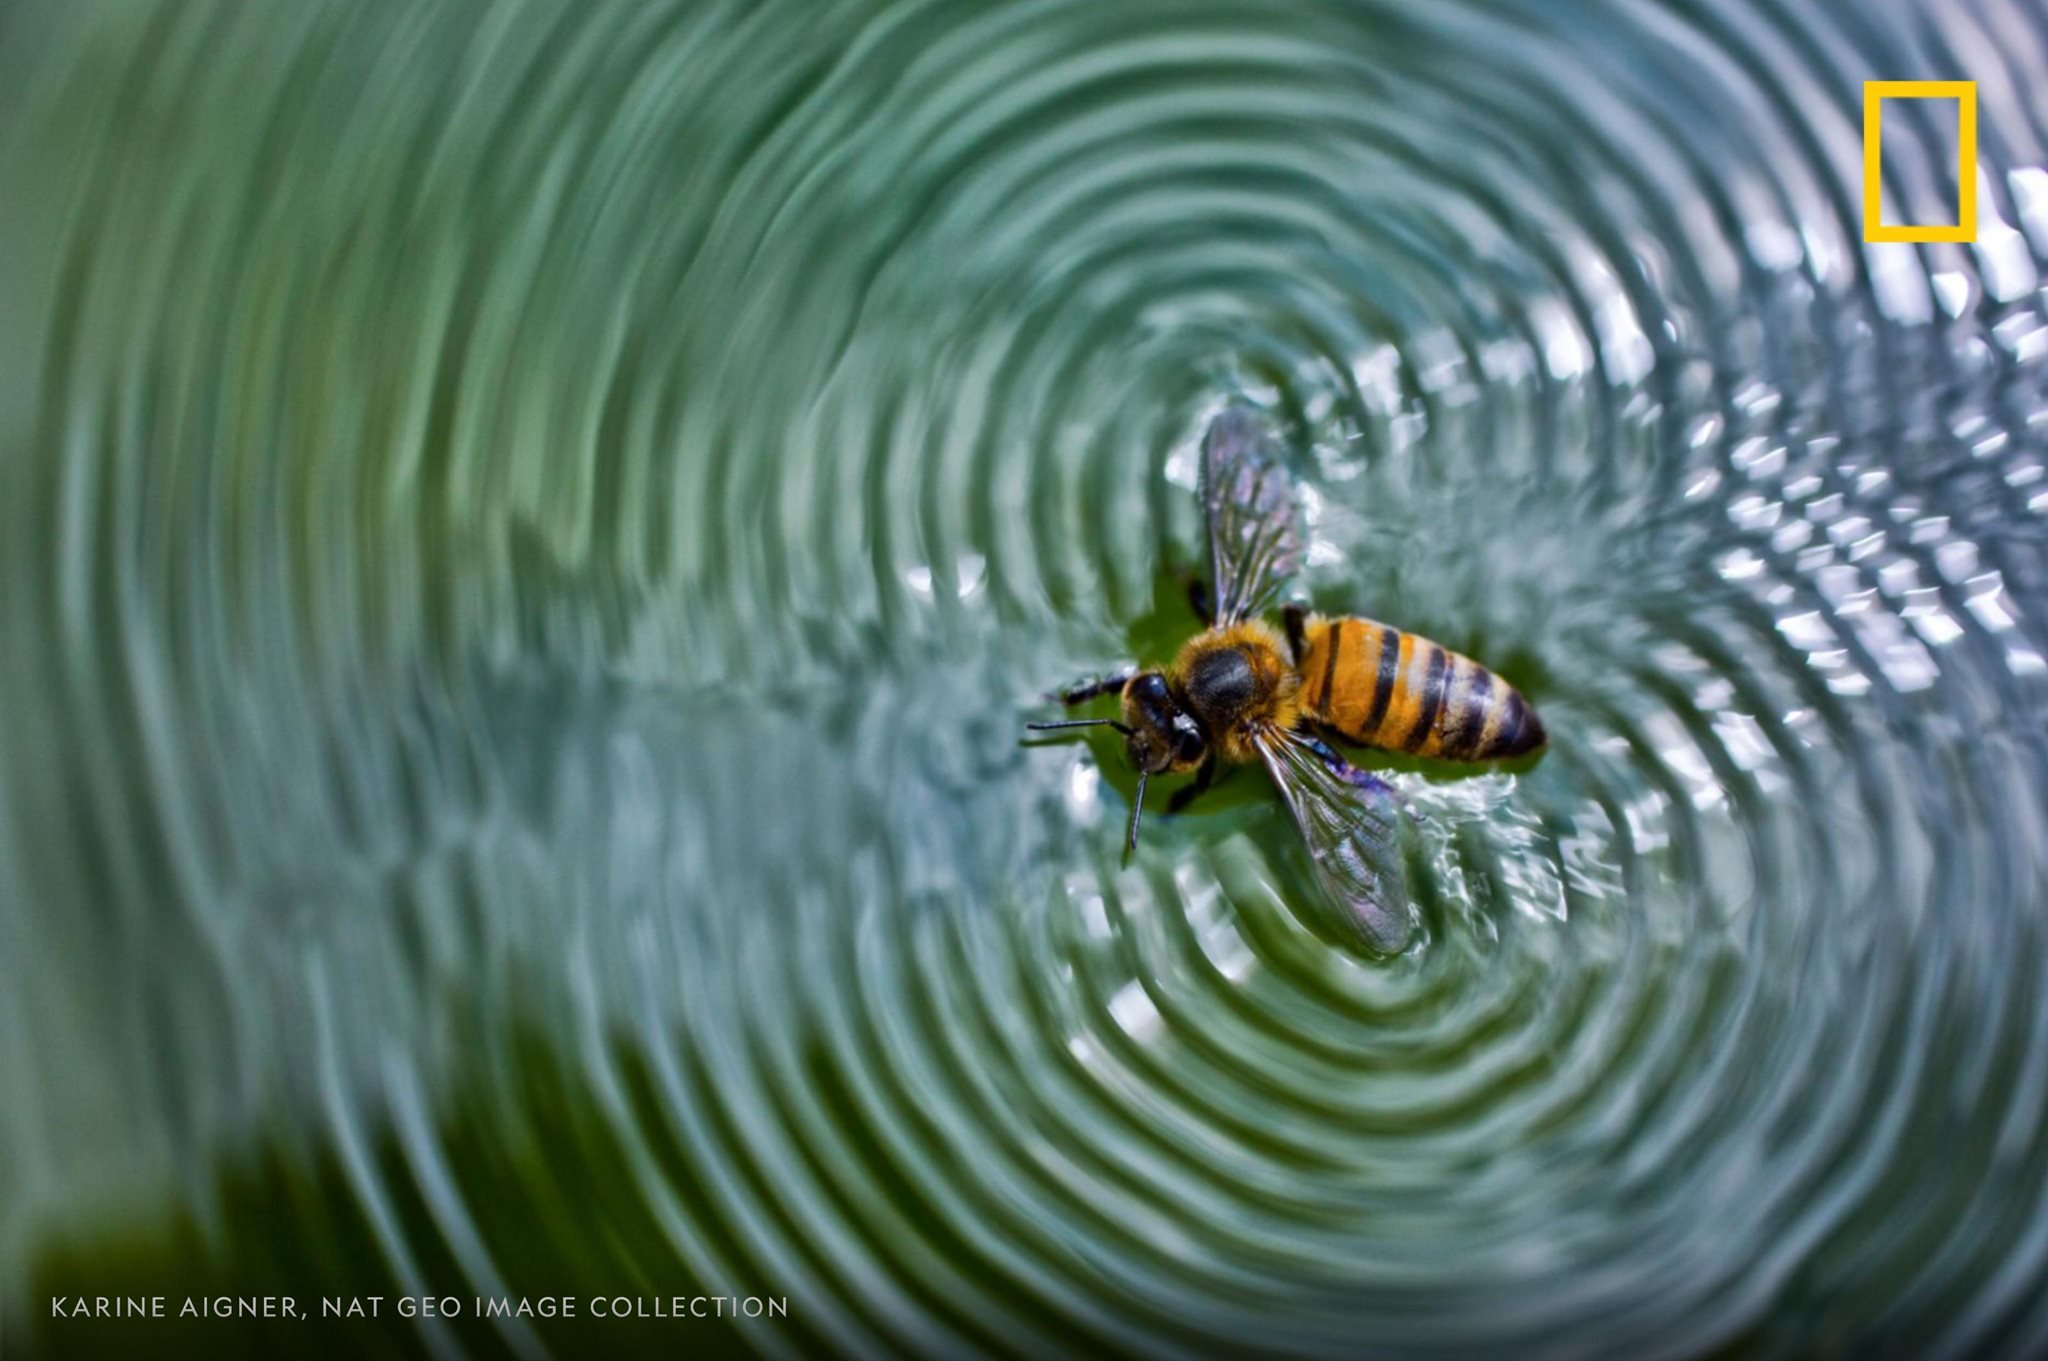 Just like every other living thing, honeybees need water to survive. During the summer, a hive needs at least a liter of water per day. #NationalHoneyBeeDay https://on.natgeo.com/31D80LE